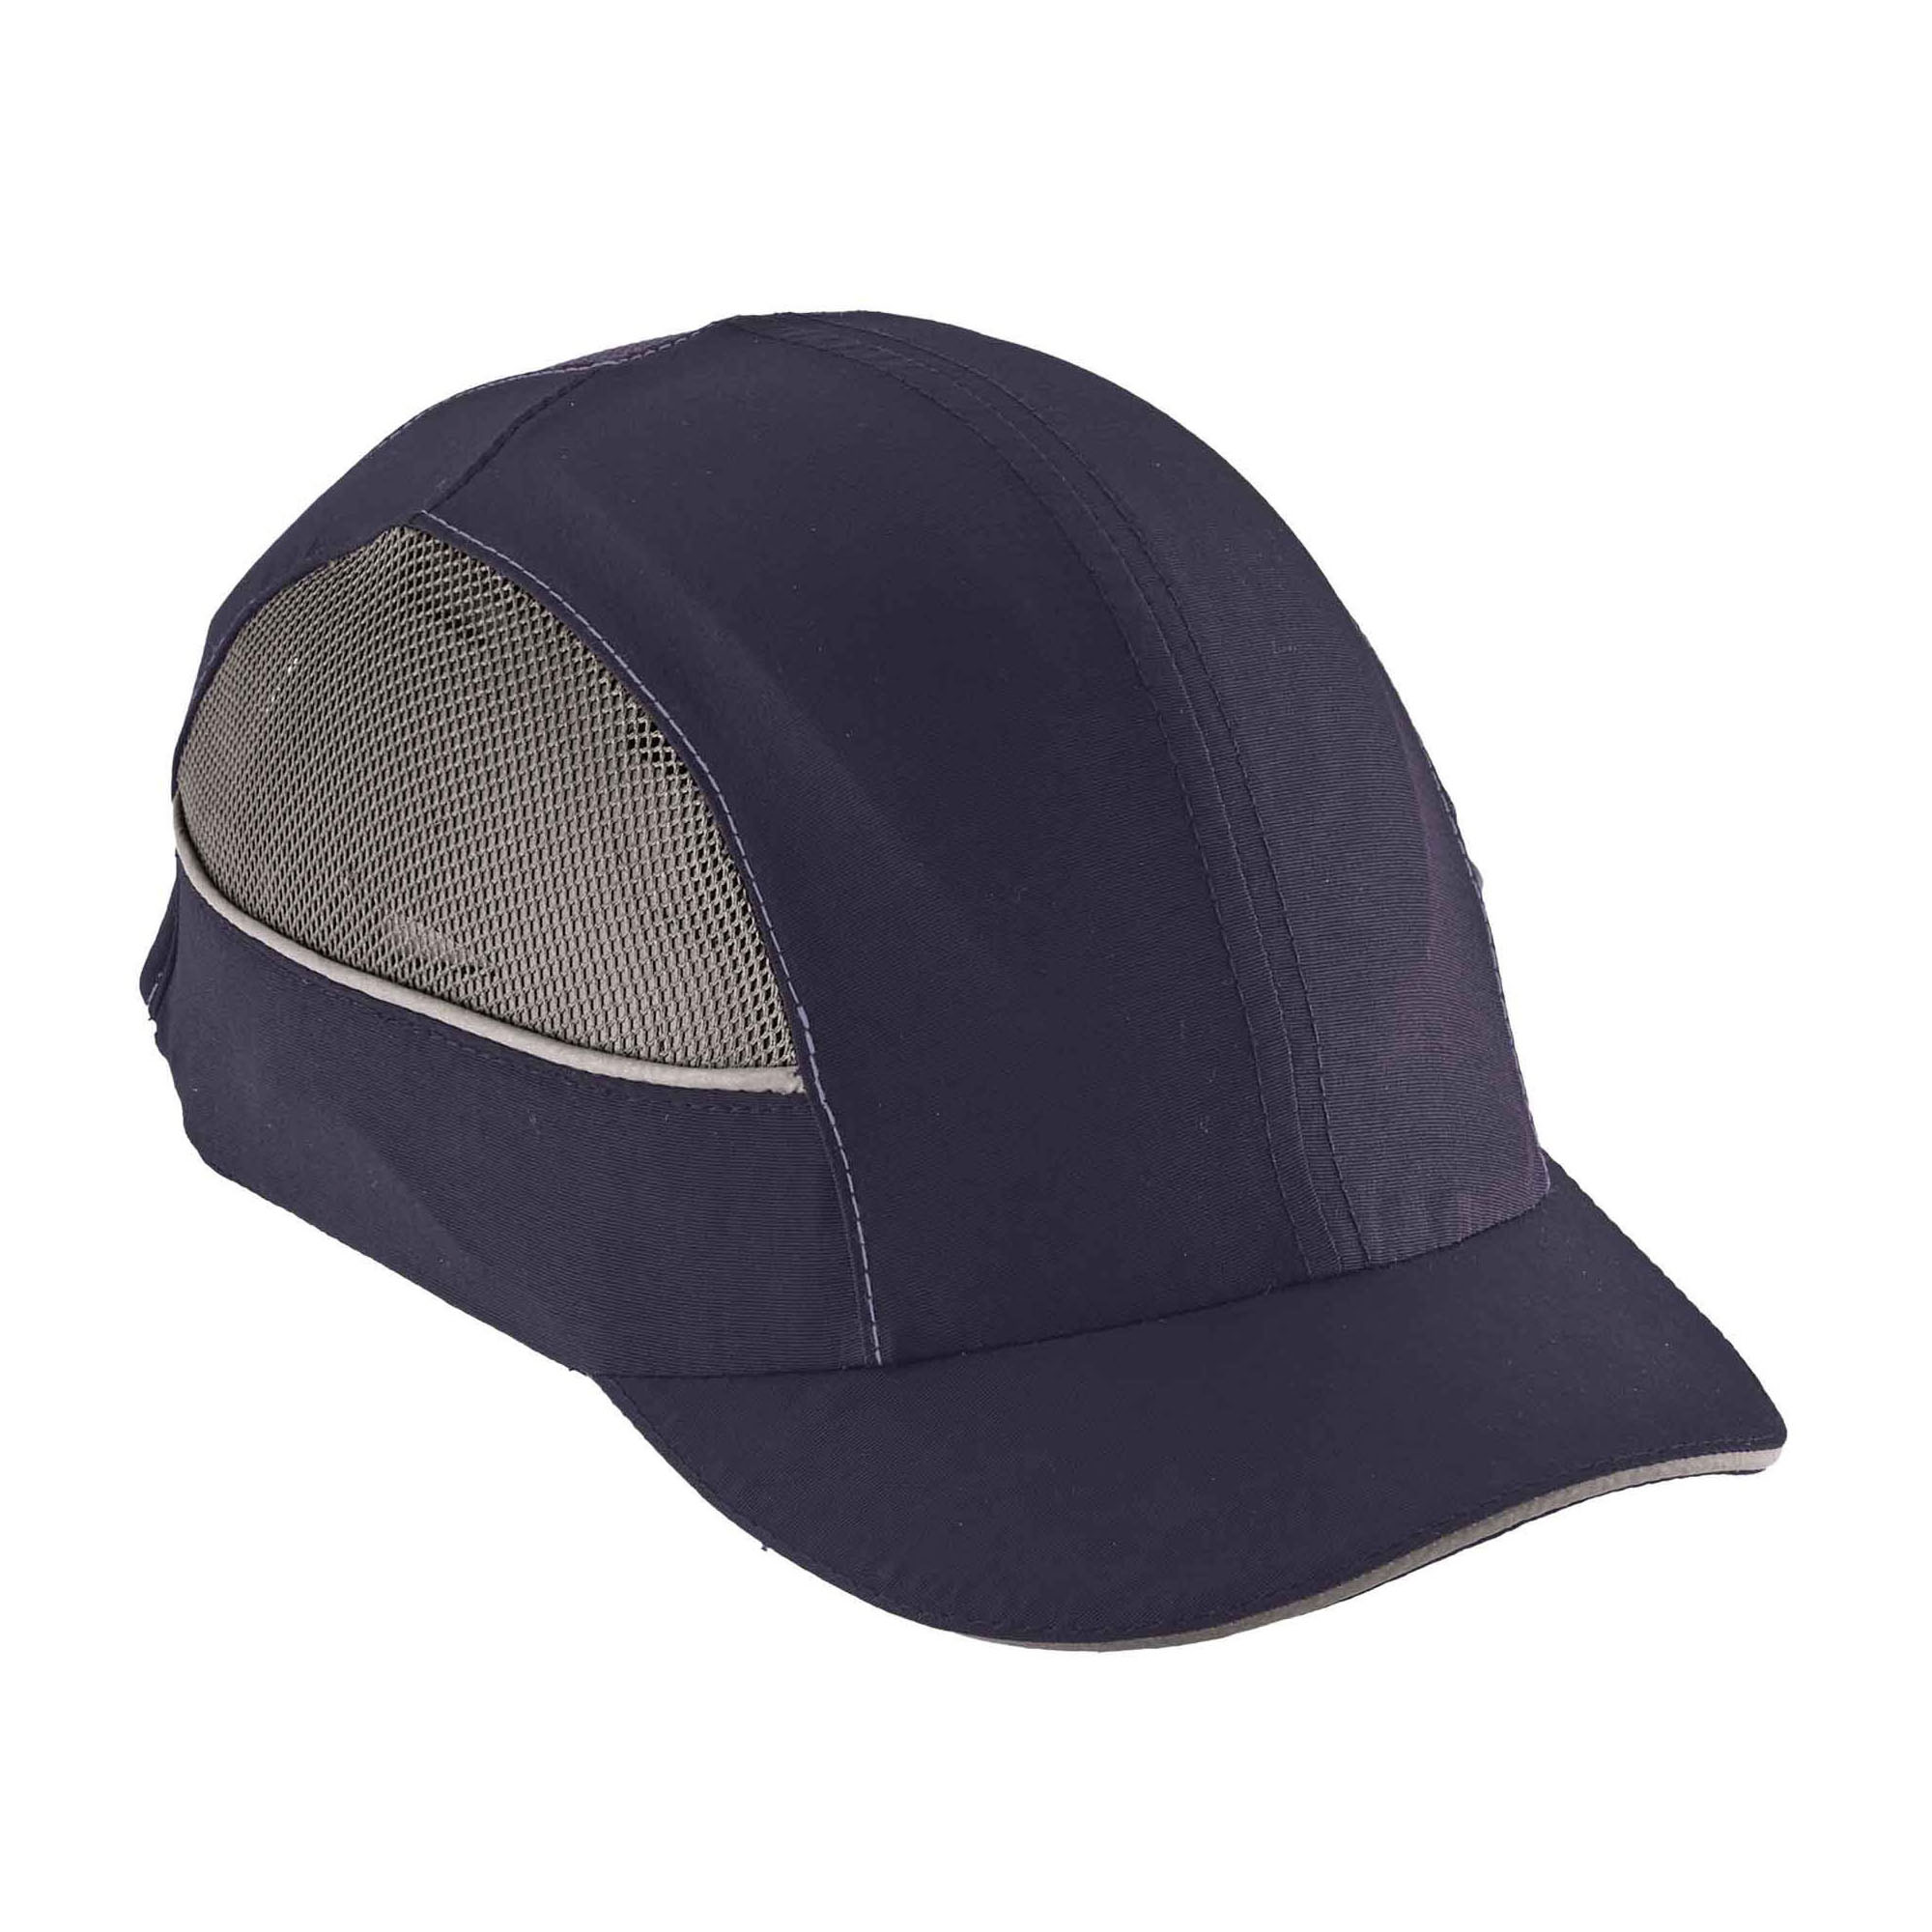 Skullerz® 23349 8950XL Impact Resistant Long Brim Machine Washable Bump Cap, Navy, Nylon, Specifications Met: EN 812